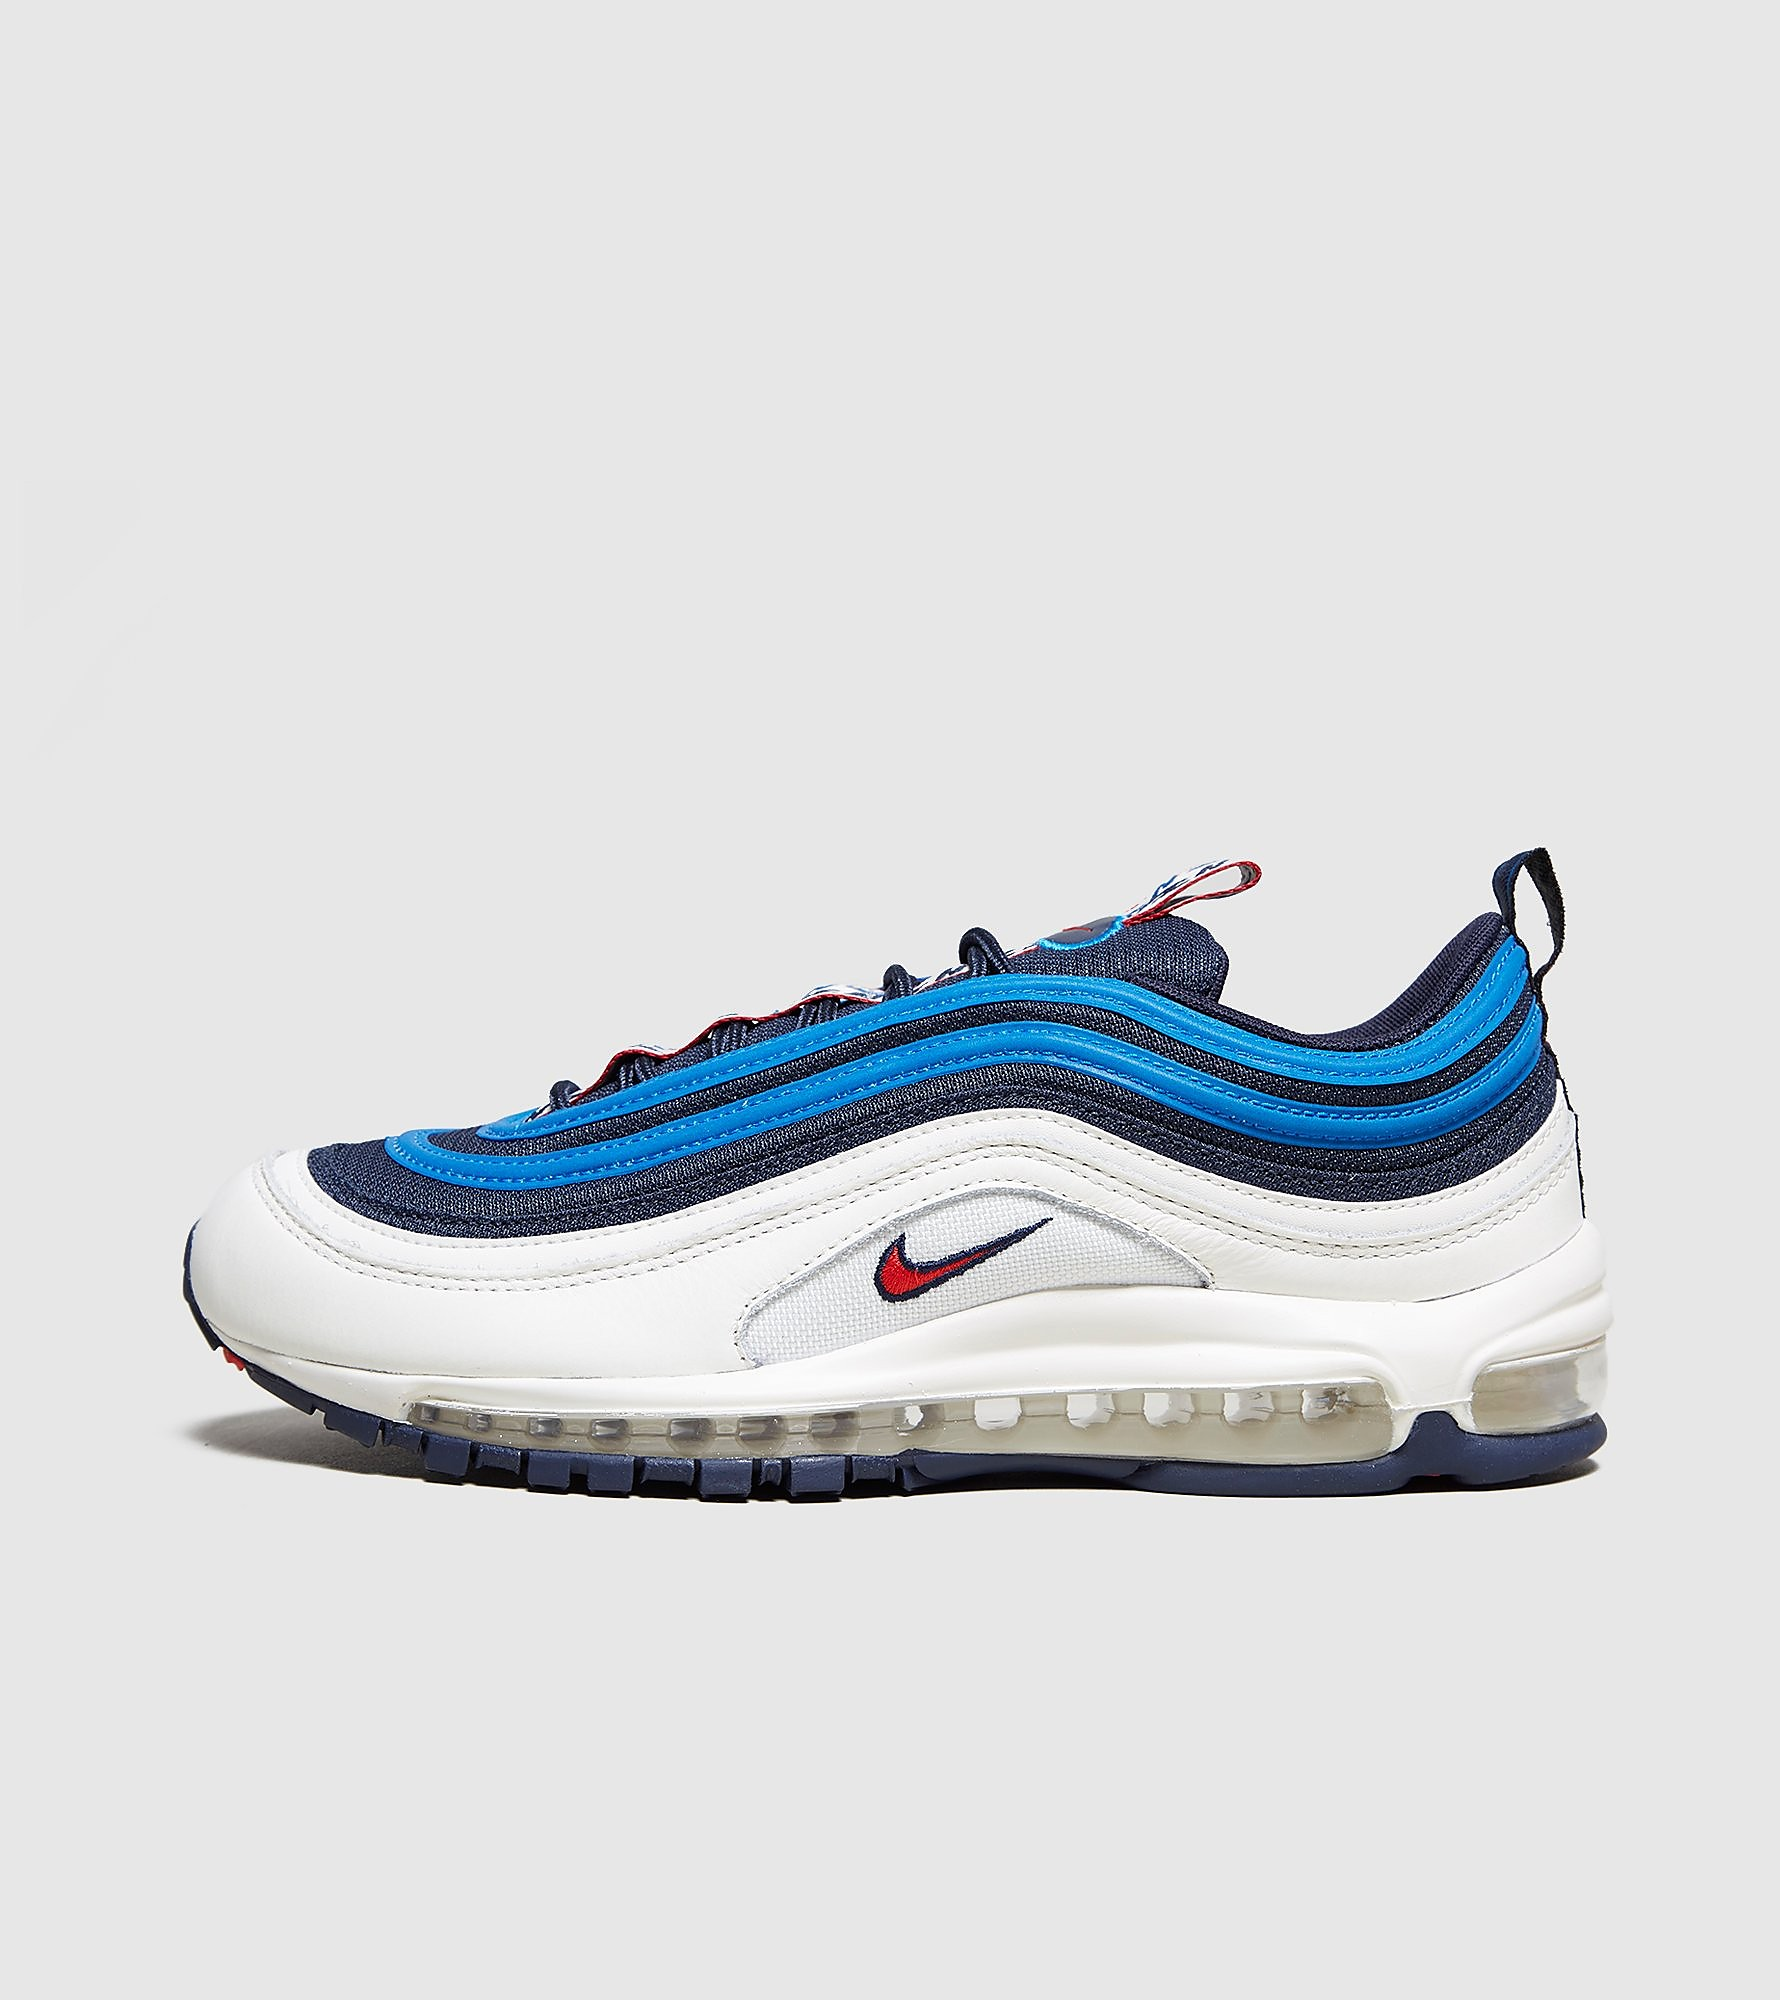 Nike Air Max 97 'Taped'